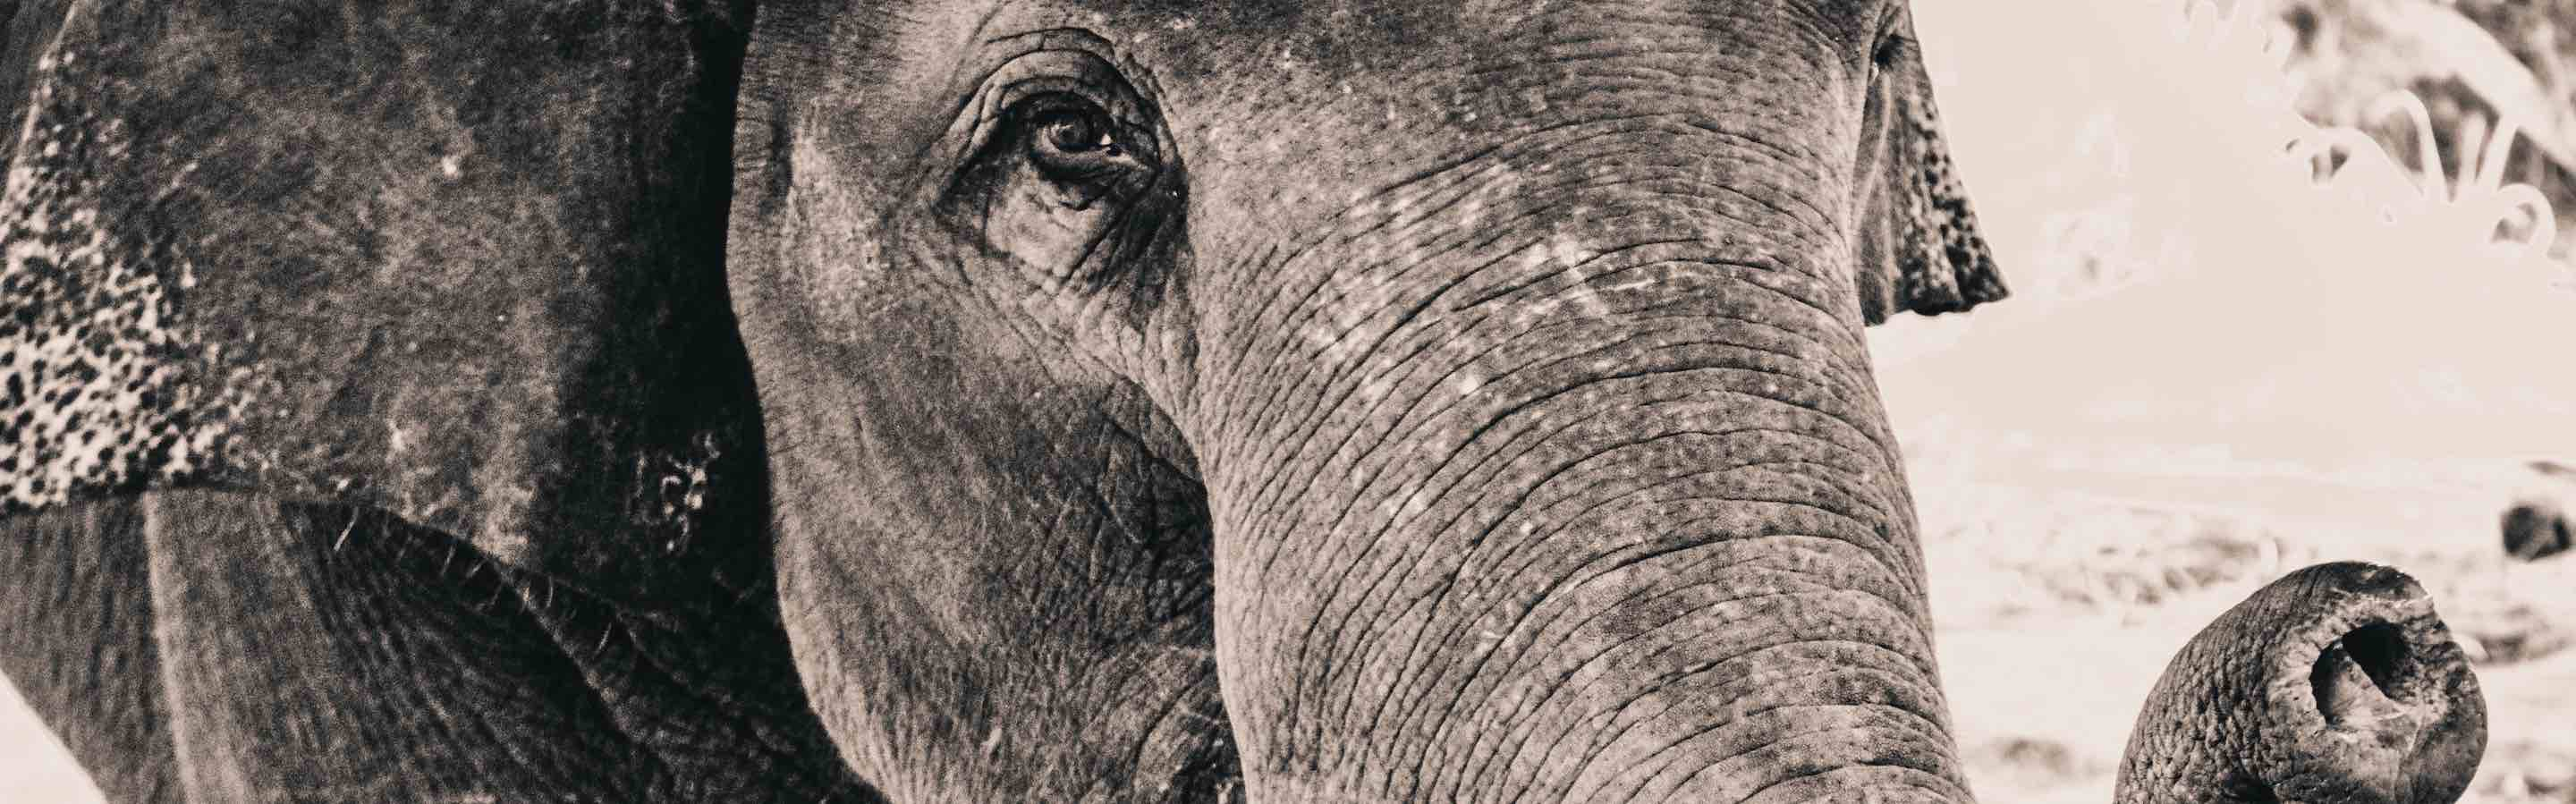 Could PostgreSQL 9 5 be your next JSON database? - Compose